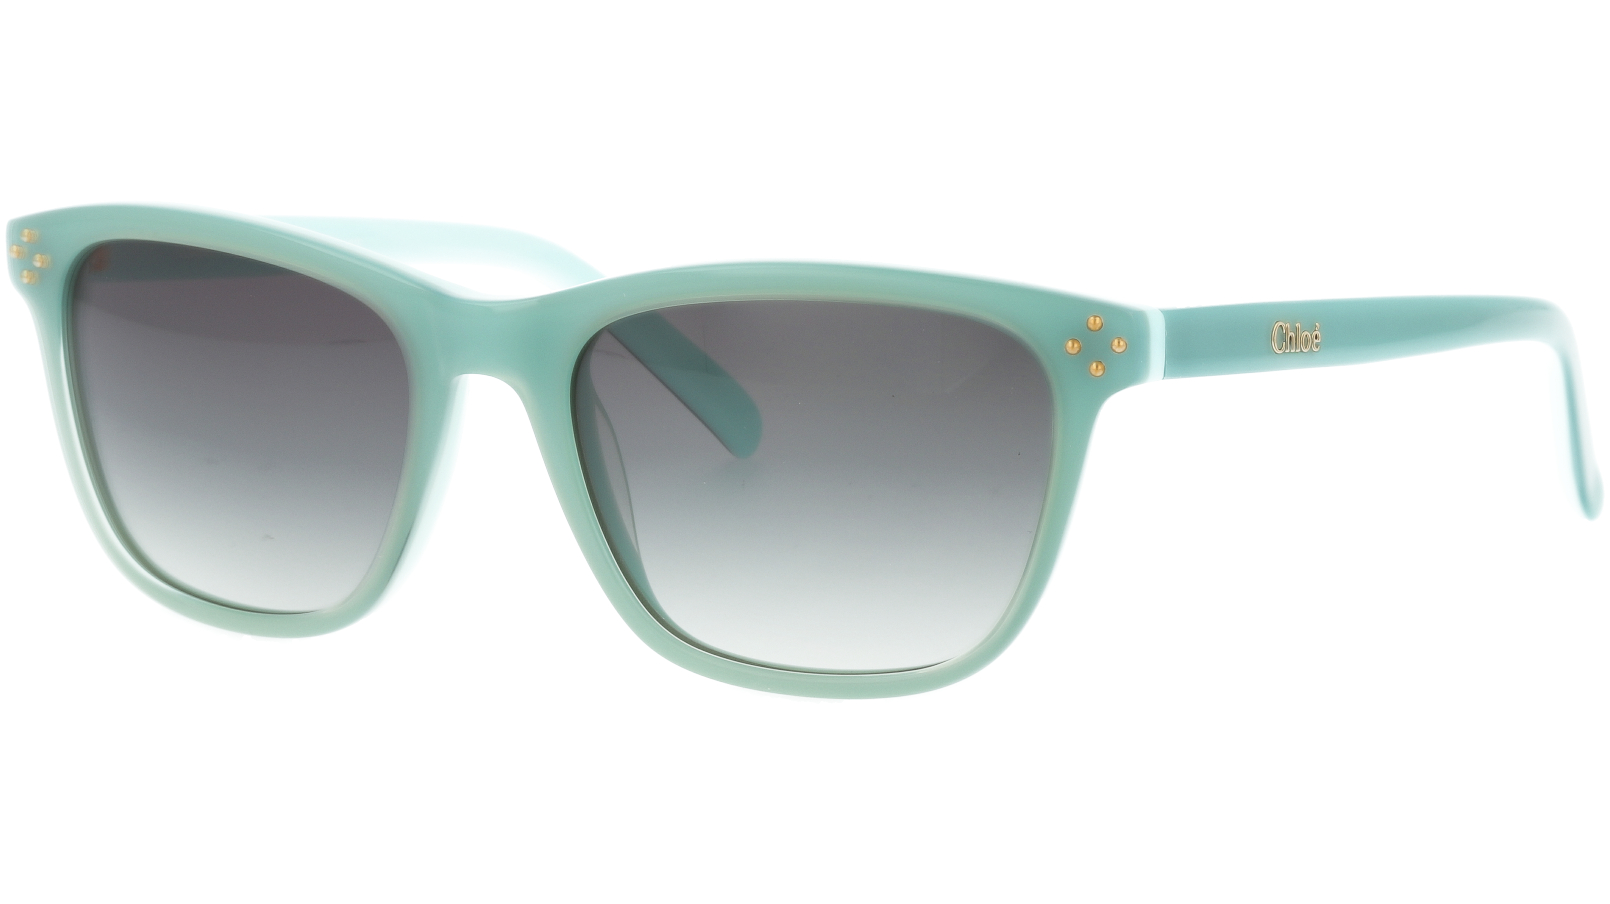 CHLOE CE3604S 444 49 Green Square Sunglasses